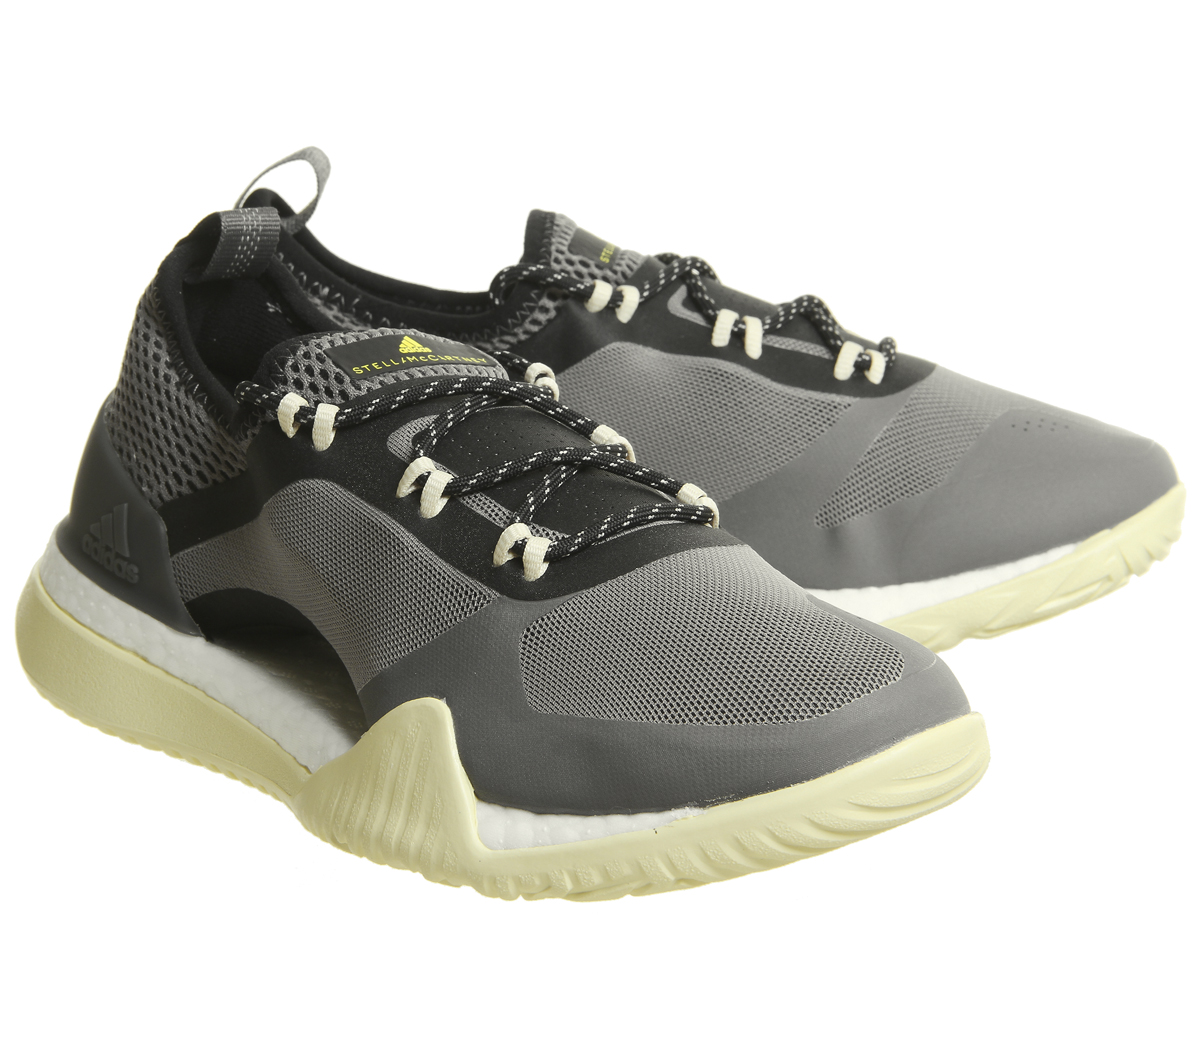 Details about Womens Adidas Pure Boost X Tr 3.0 STONE Trainers Shoes